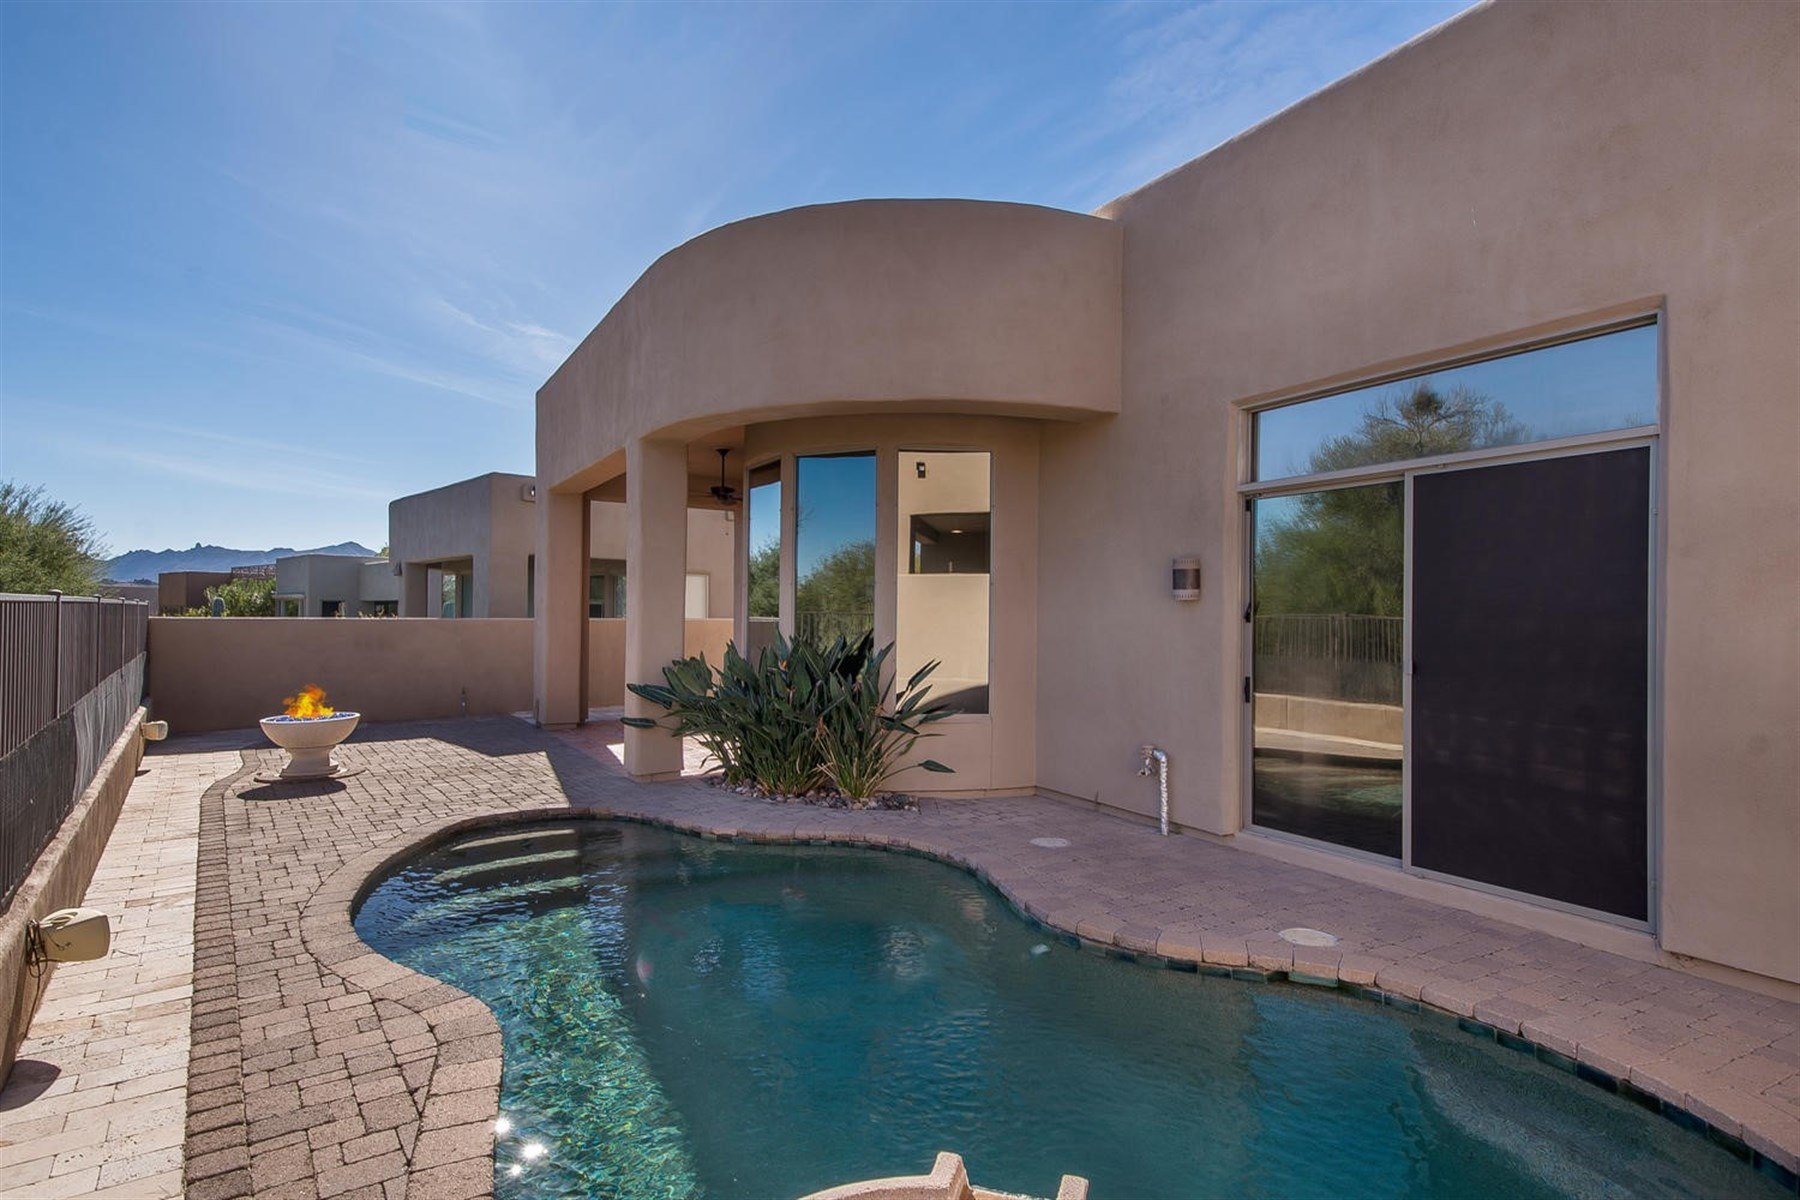 Einfamilienhaus für Verkauf beim Gated Pinnacle Canyon Las Ventanas Troon North 27969 N 108th Way Scottsdale, Arizona, 85262 Vereinigte Staaten